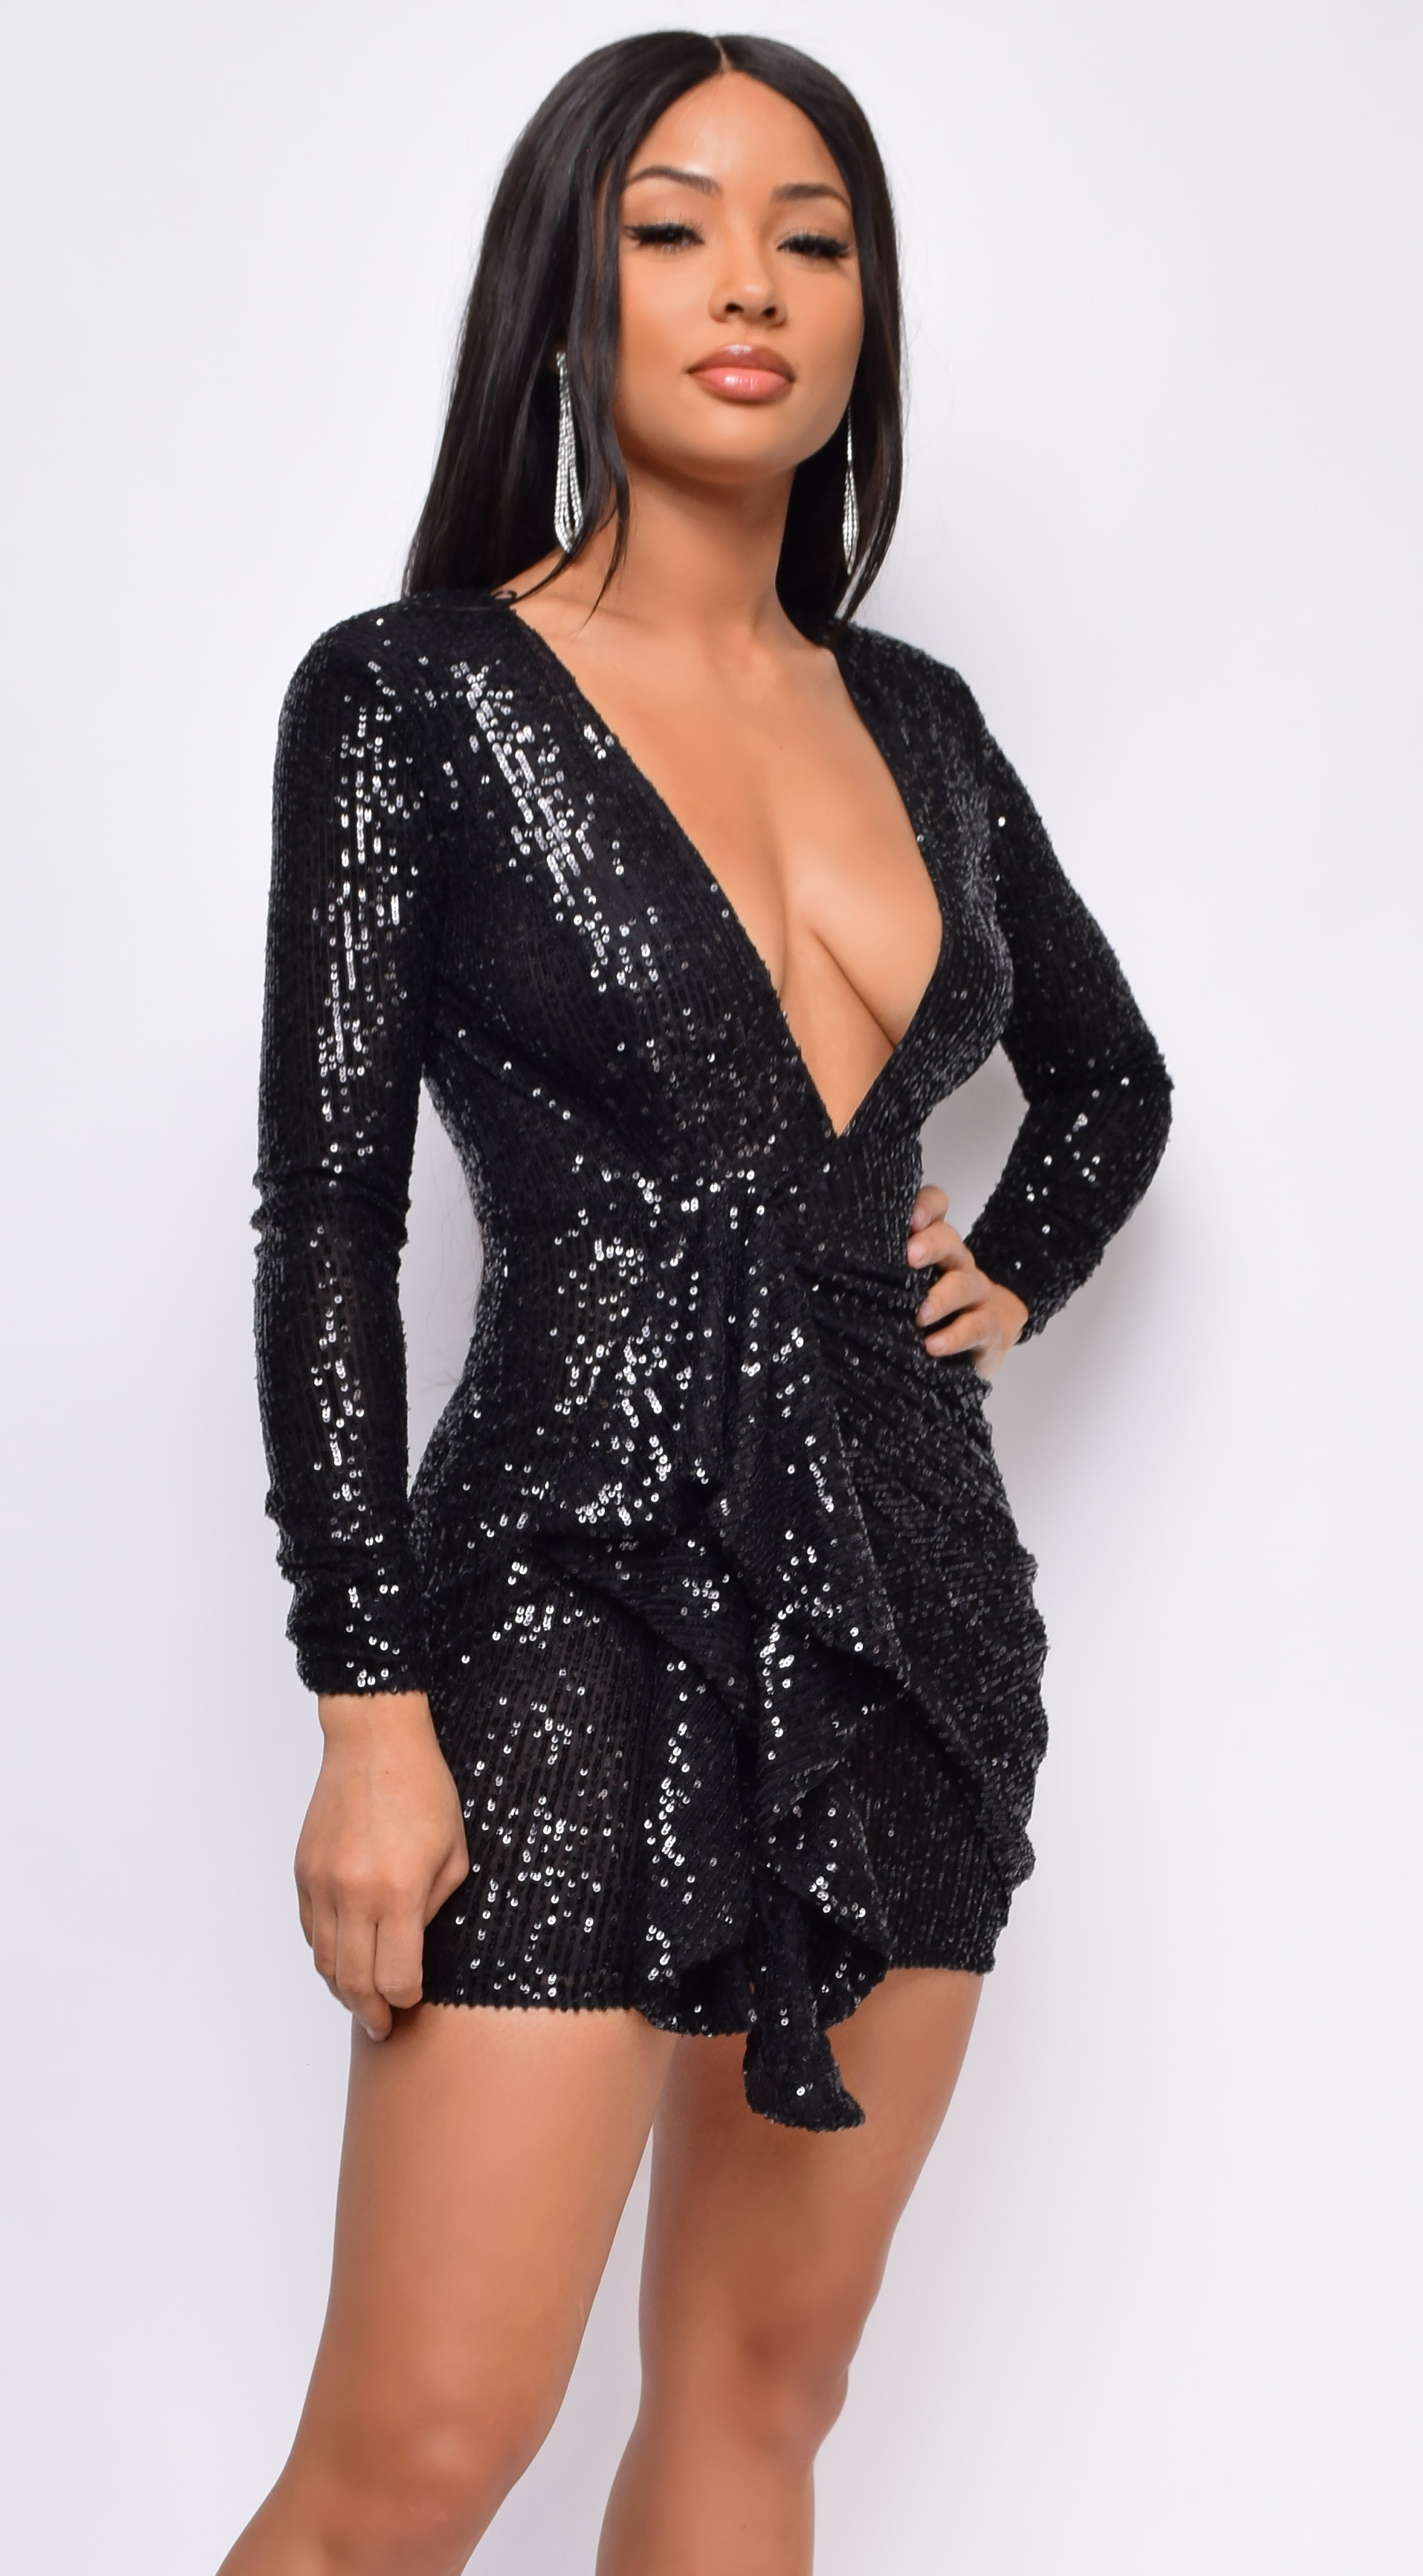 Soila Black Sequin Drape Side Dress